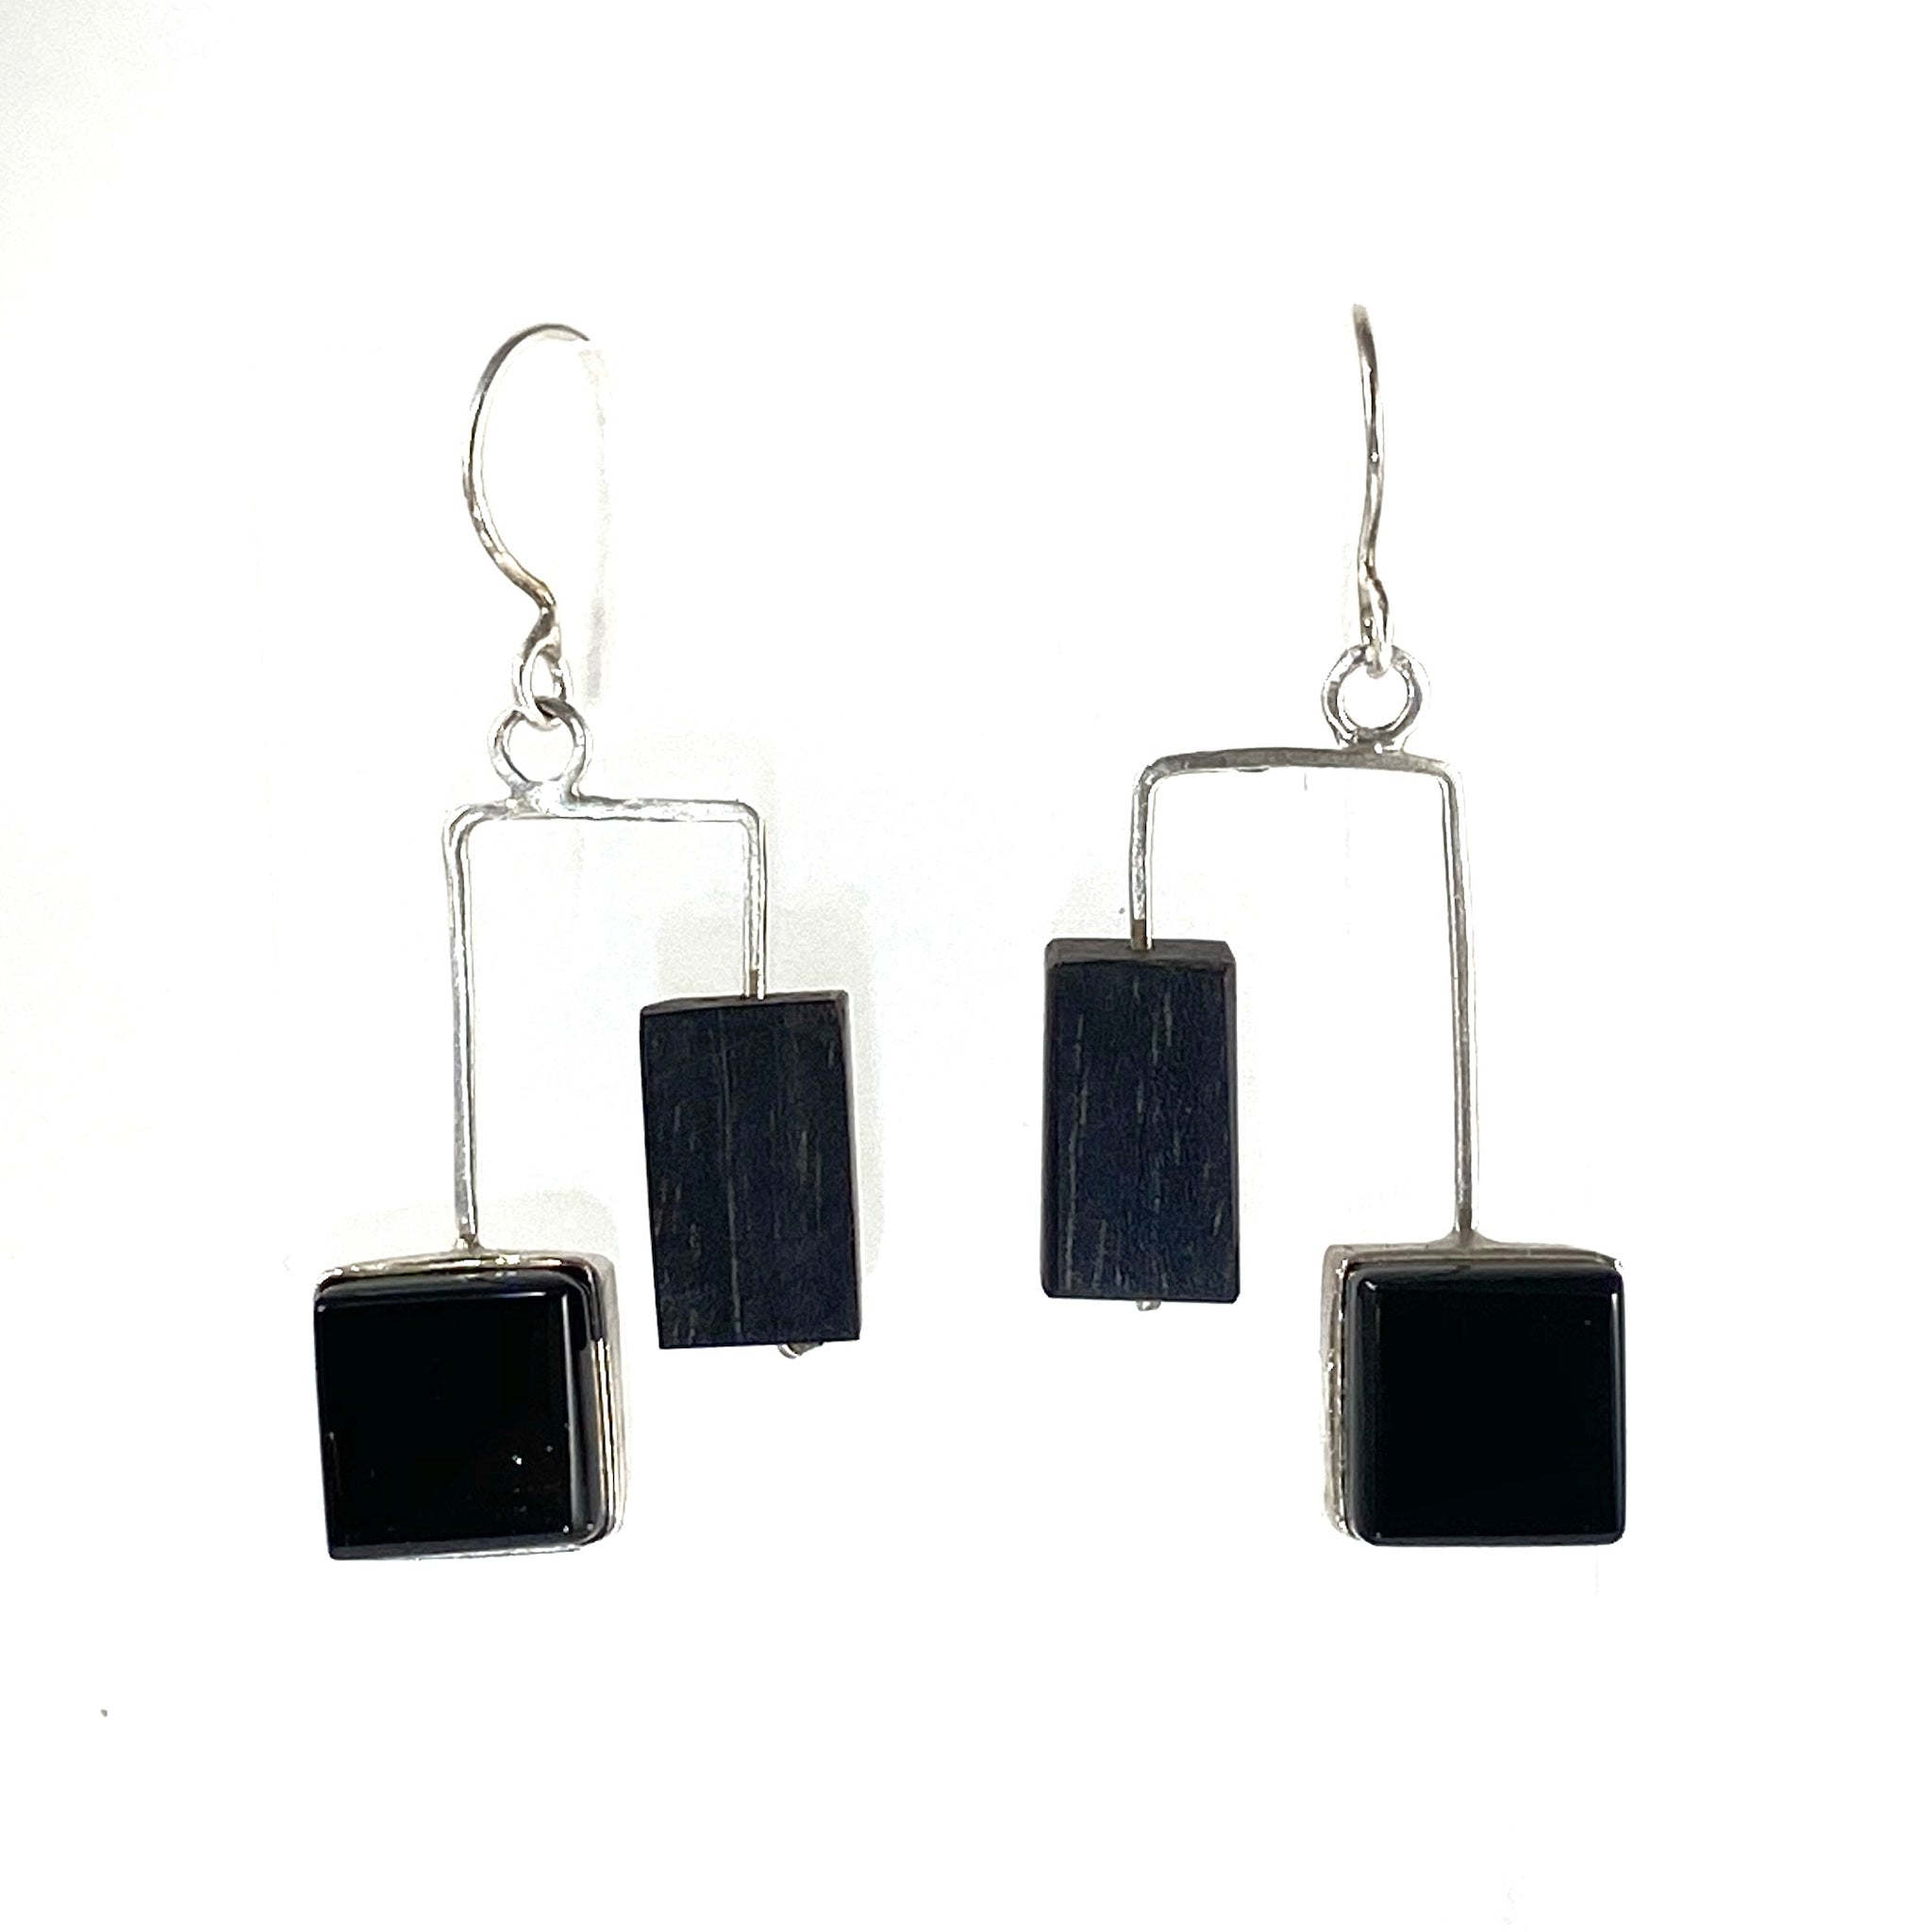 Mid Century Modern inspired, ebony wood and fused glass earrings, fused glass, glass jewelry, glass and silver jewelry, handmade, handcrafted, American Craft, hand fabricated jewelry, hand fabricated jewellery,  Athen, Georgia, colorful jewelry, sparkle, bullseye glass, dichroic glass, art jewelry